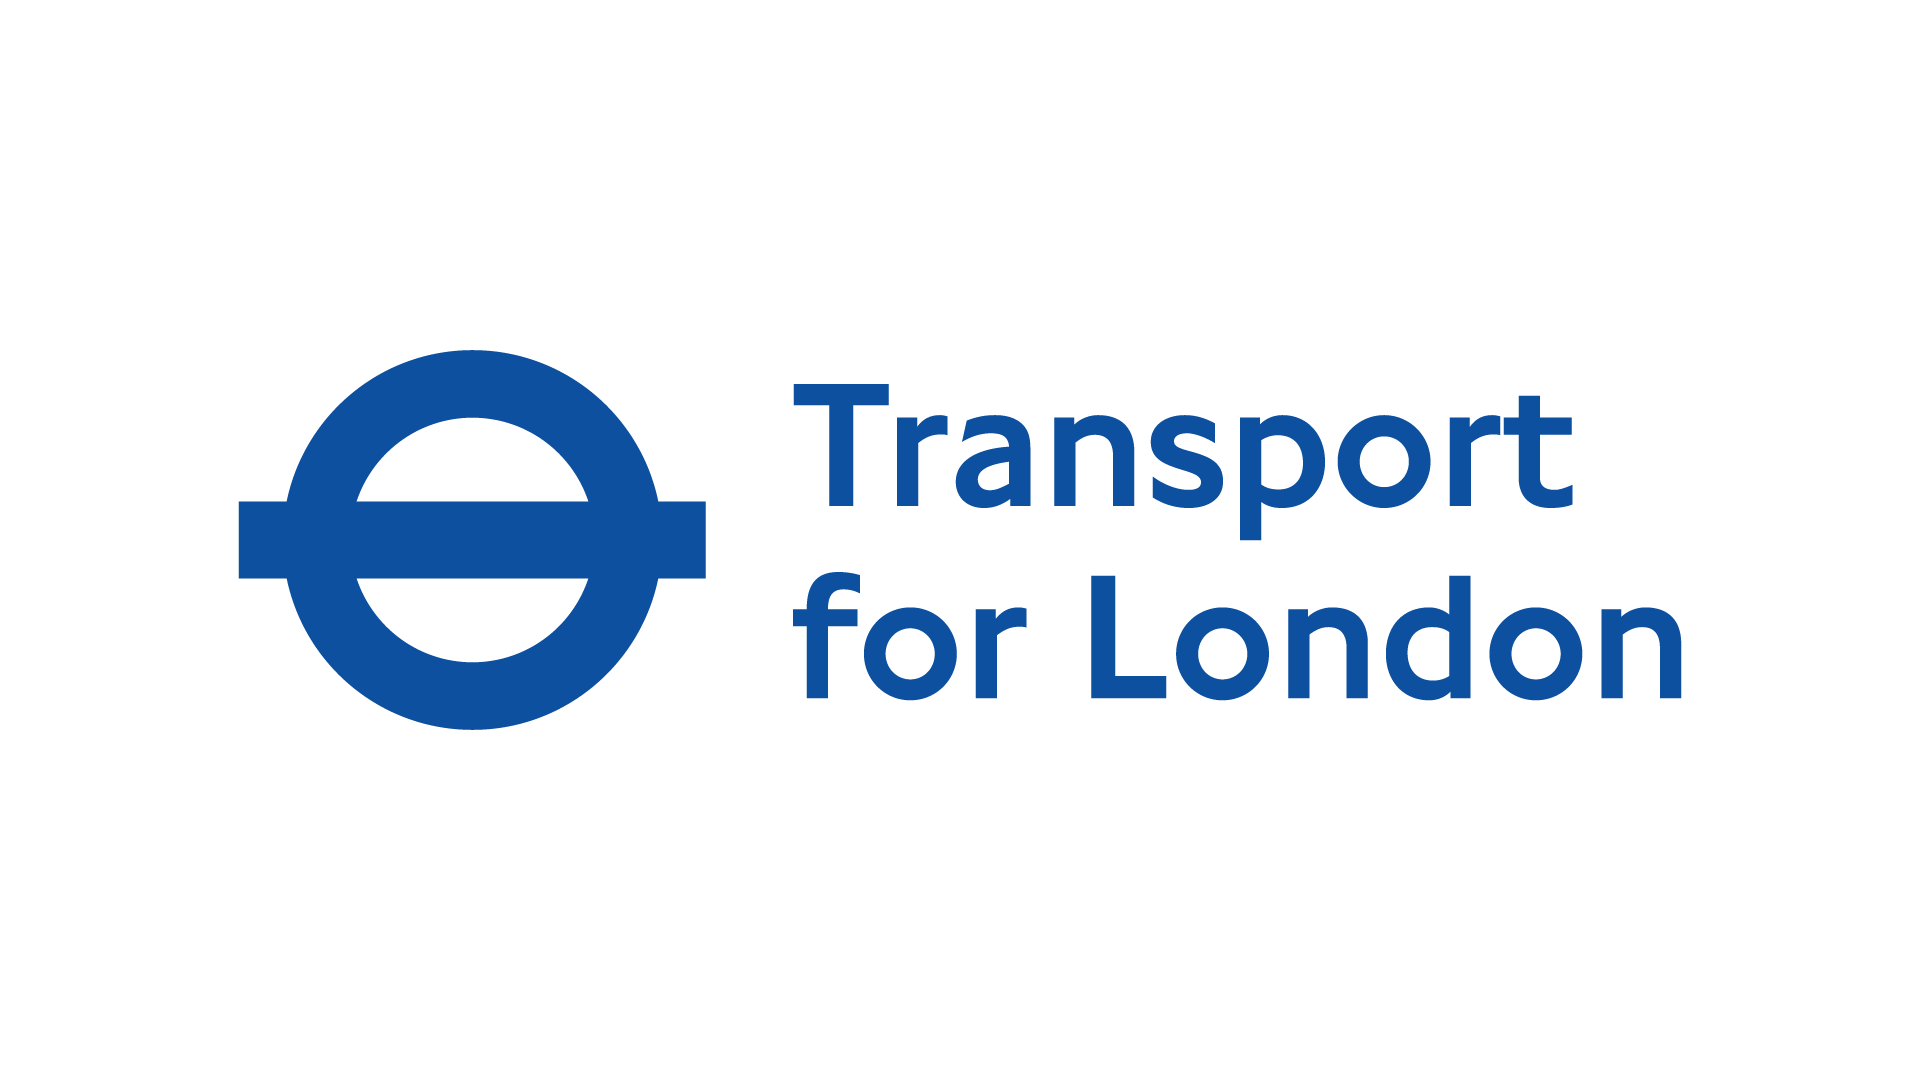 CADS client Transport for London